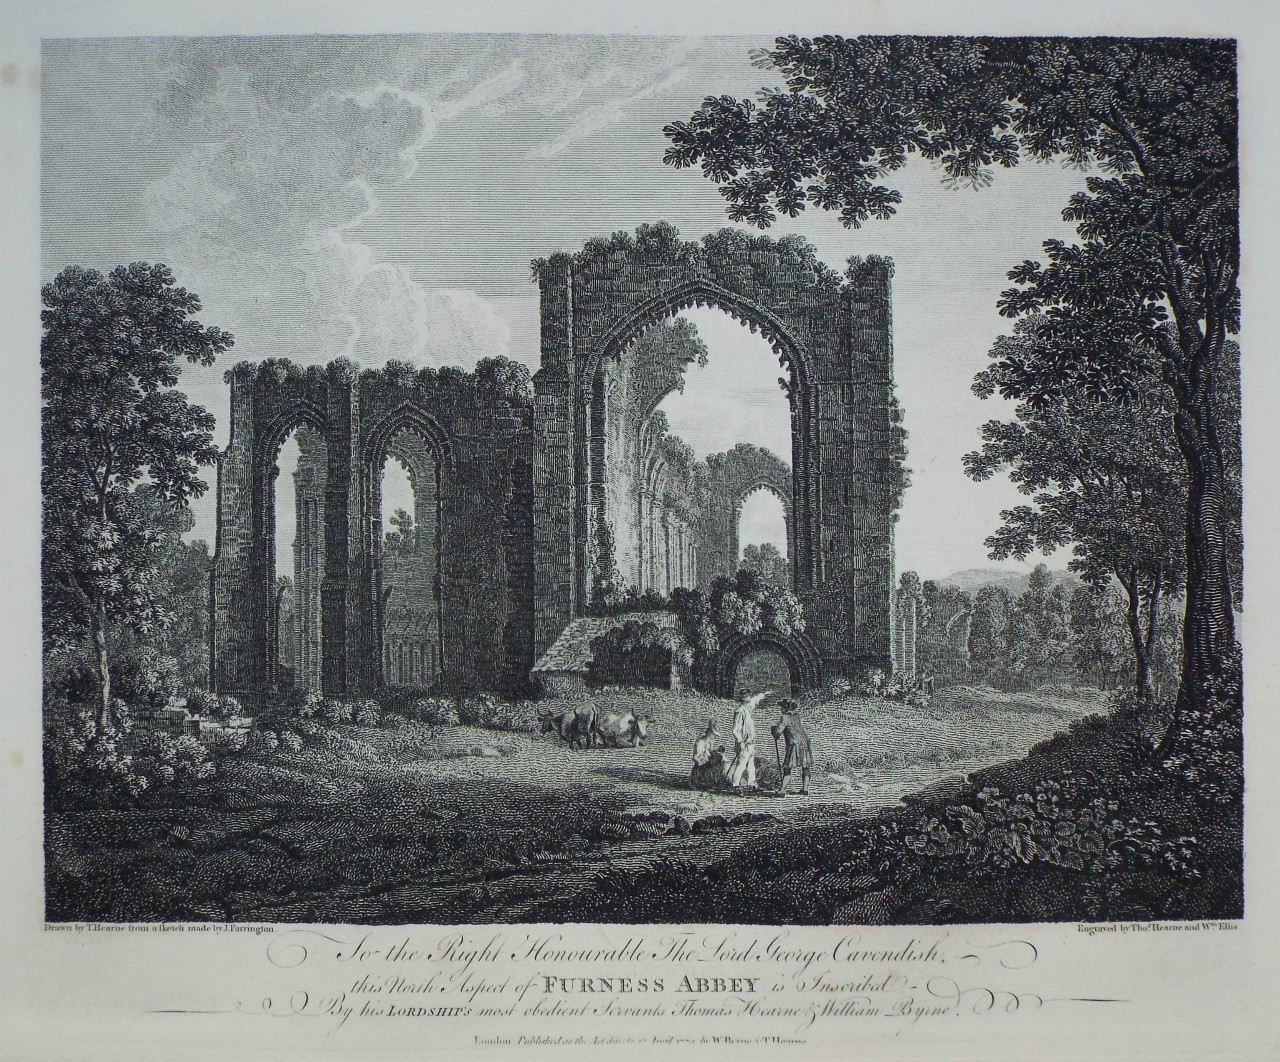 Print - Furness Abbey - Byrne